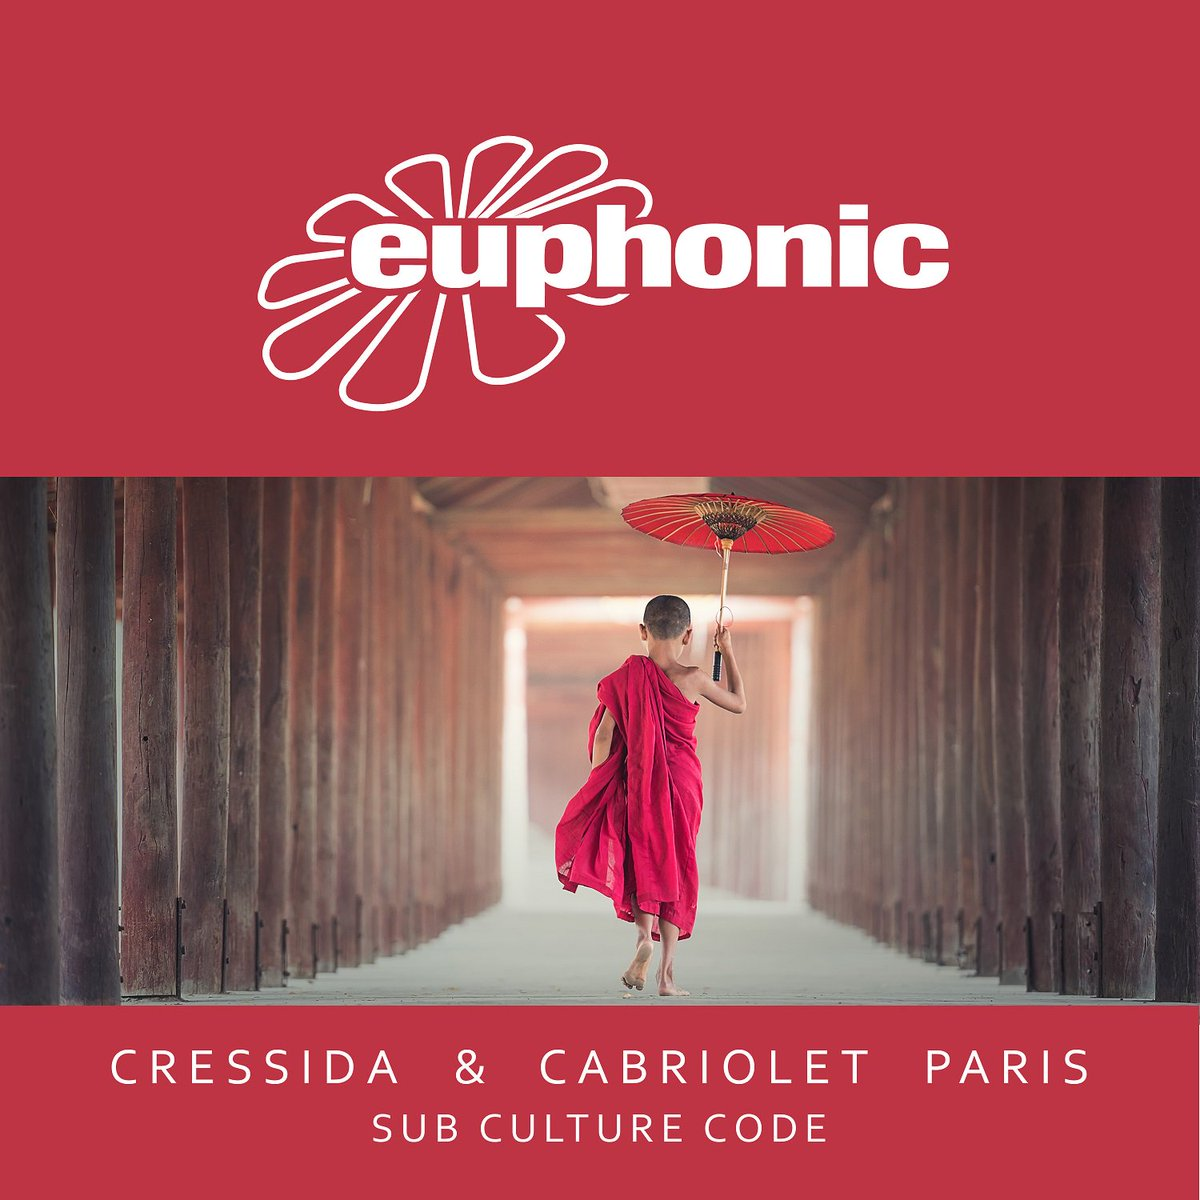 Yeah! Since a long time a new single by melody maker and label veteran @Cressidamusic is out today: http://www.EUPHONIC.LNK.TO/EUPH277 He teamed up with another long-term Euphonic artist - @CabrioletParis aka @SteveBrianMusic 😜  #trancefamily